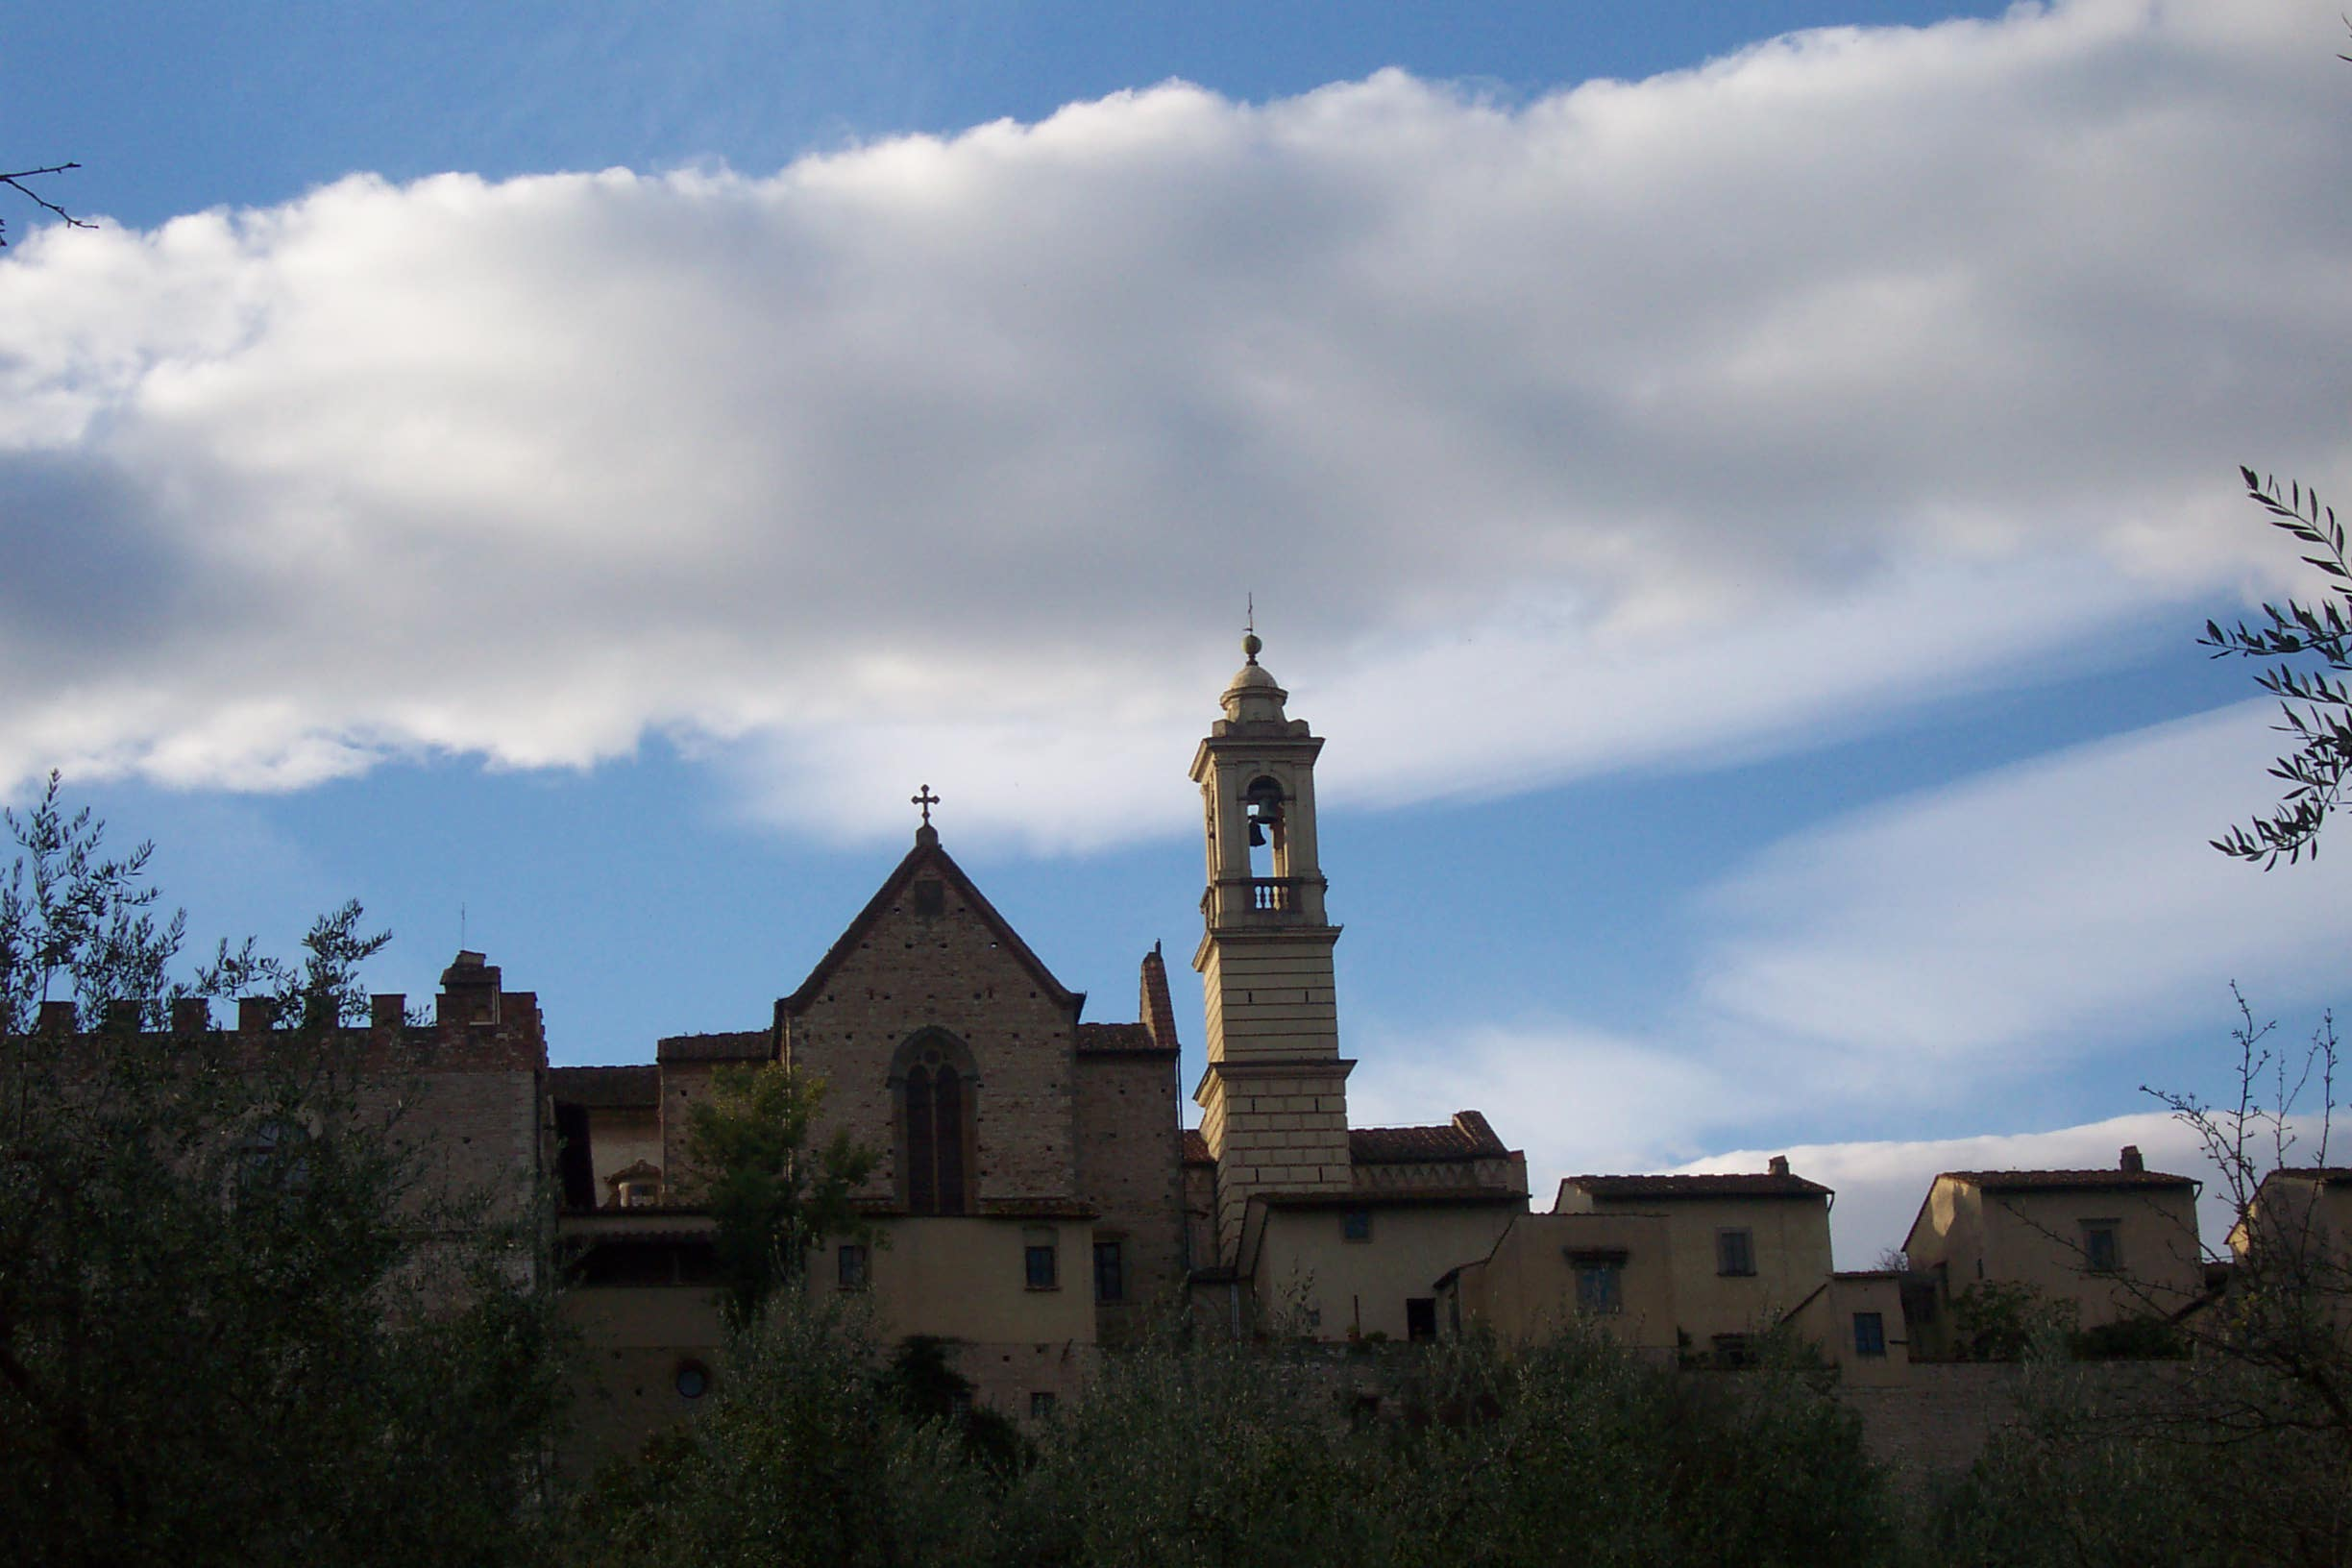 A link to information on the Certosa.